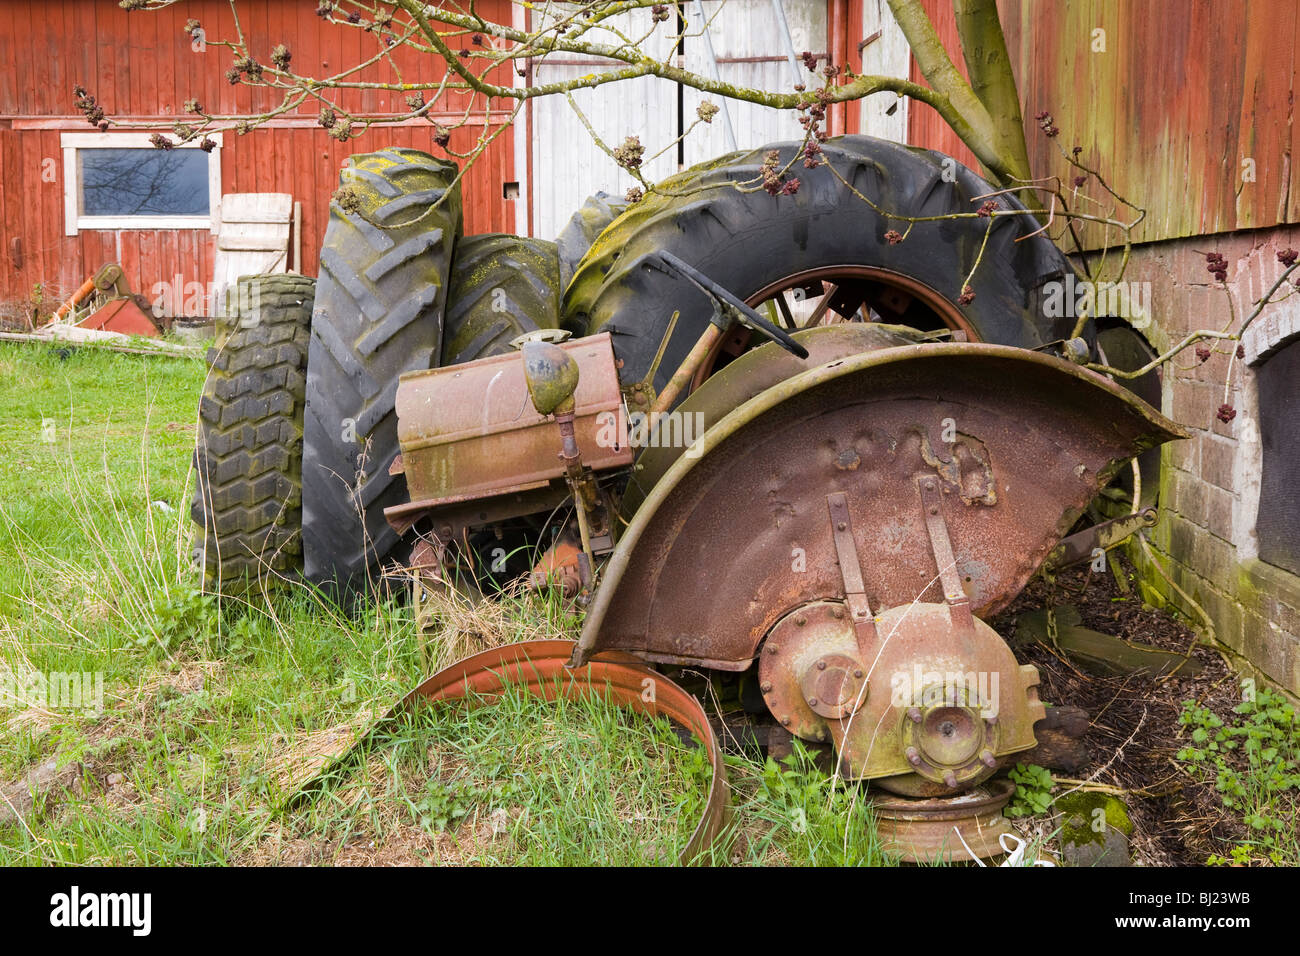 Old tractor parts Stock Photo: 28321143 - Alamy